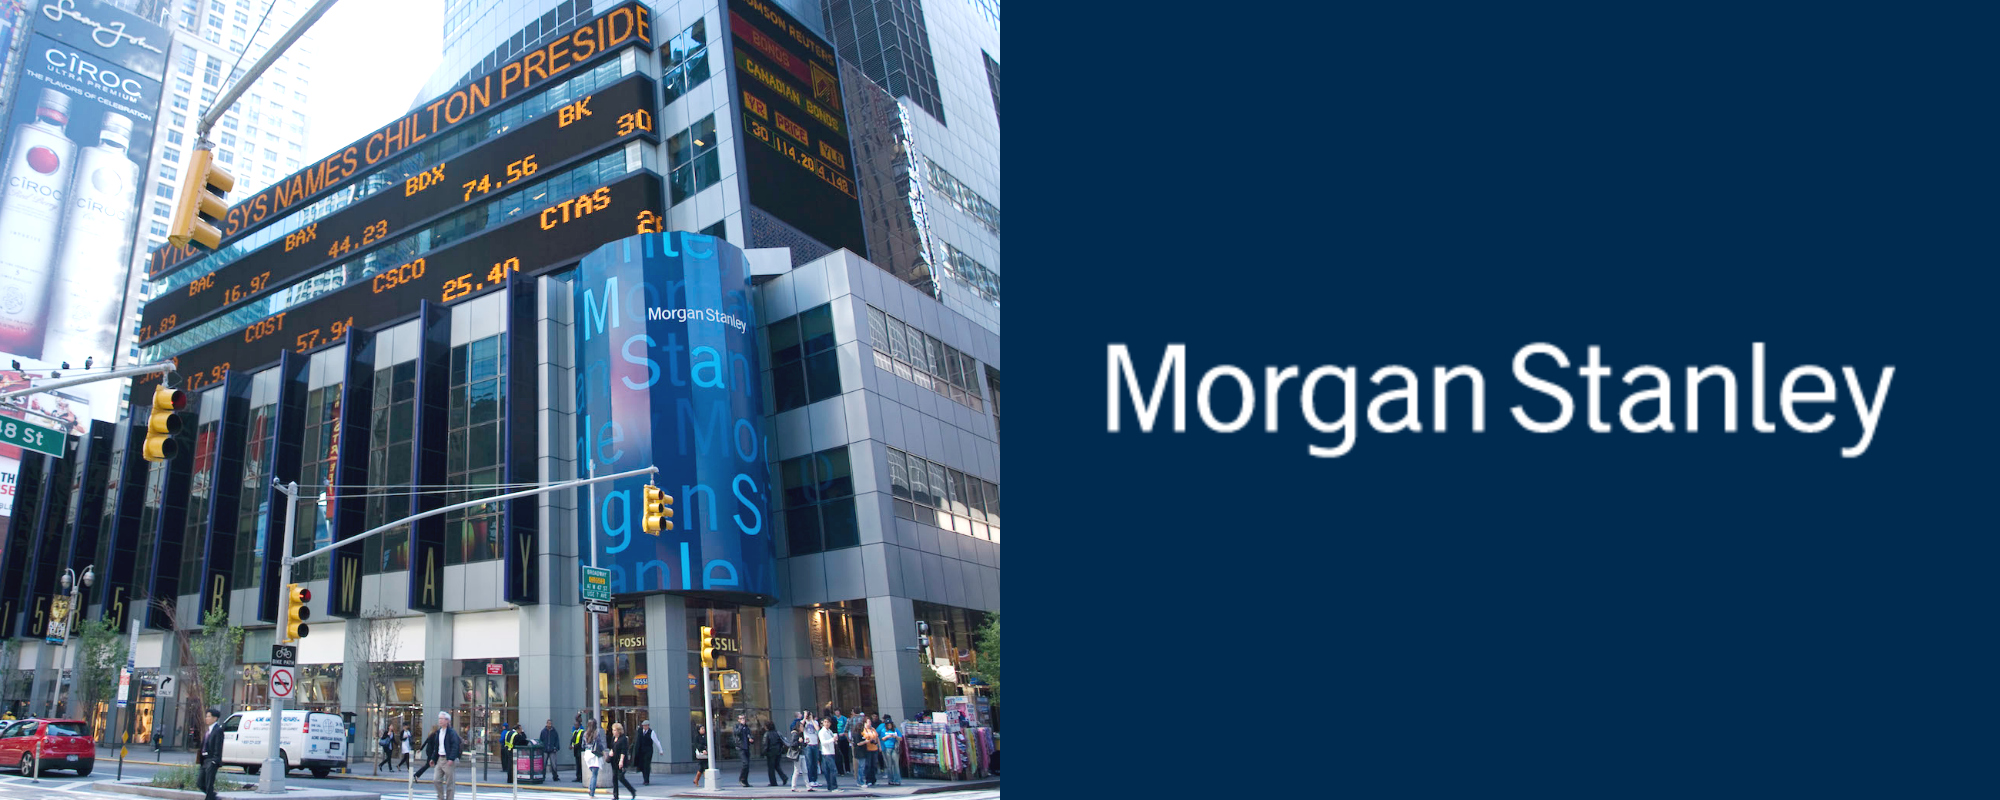 Morgan Stanley Most Powerful M&A Firms in the world best upslide